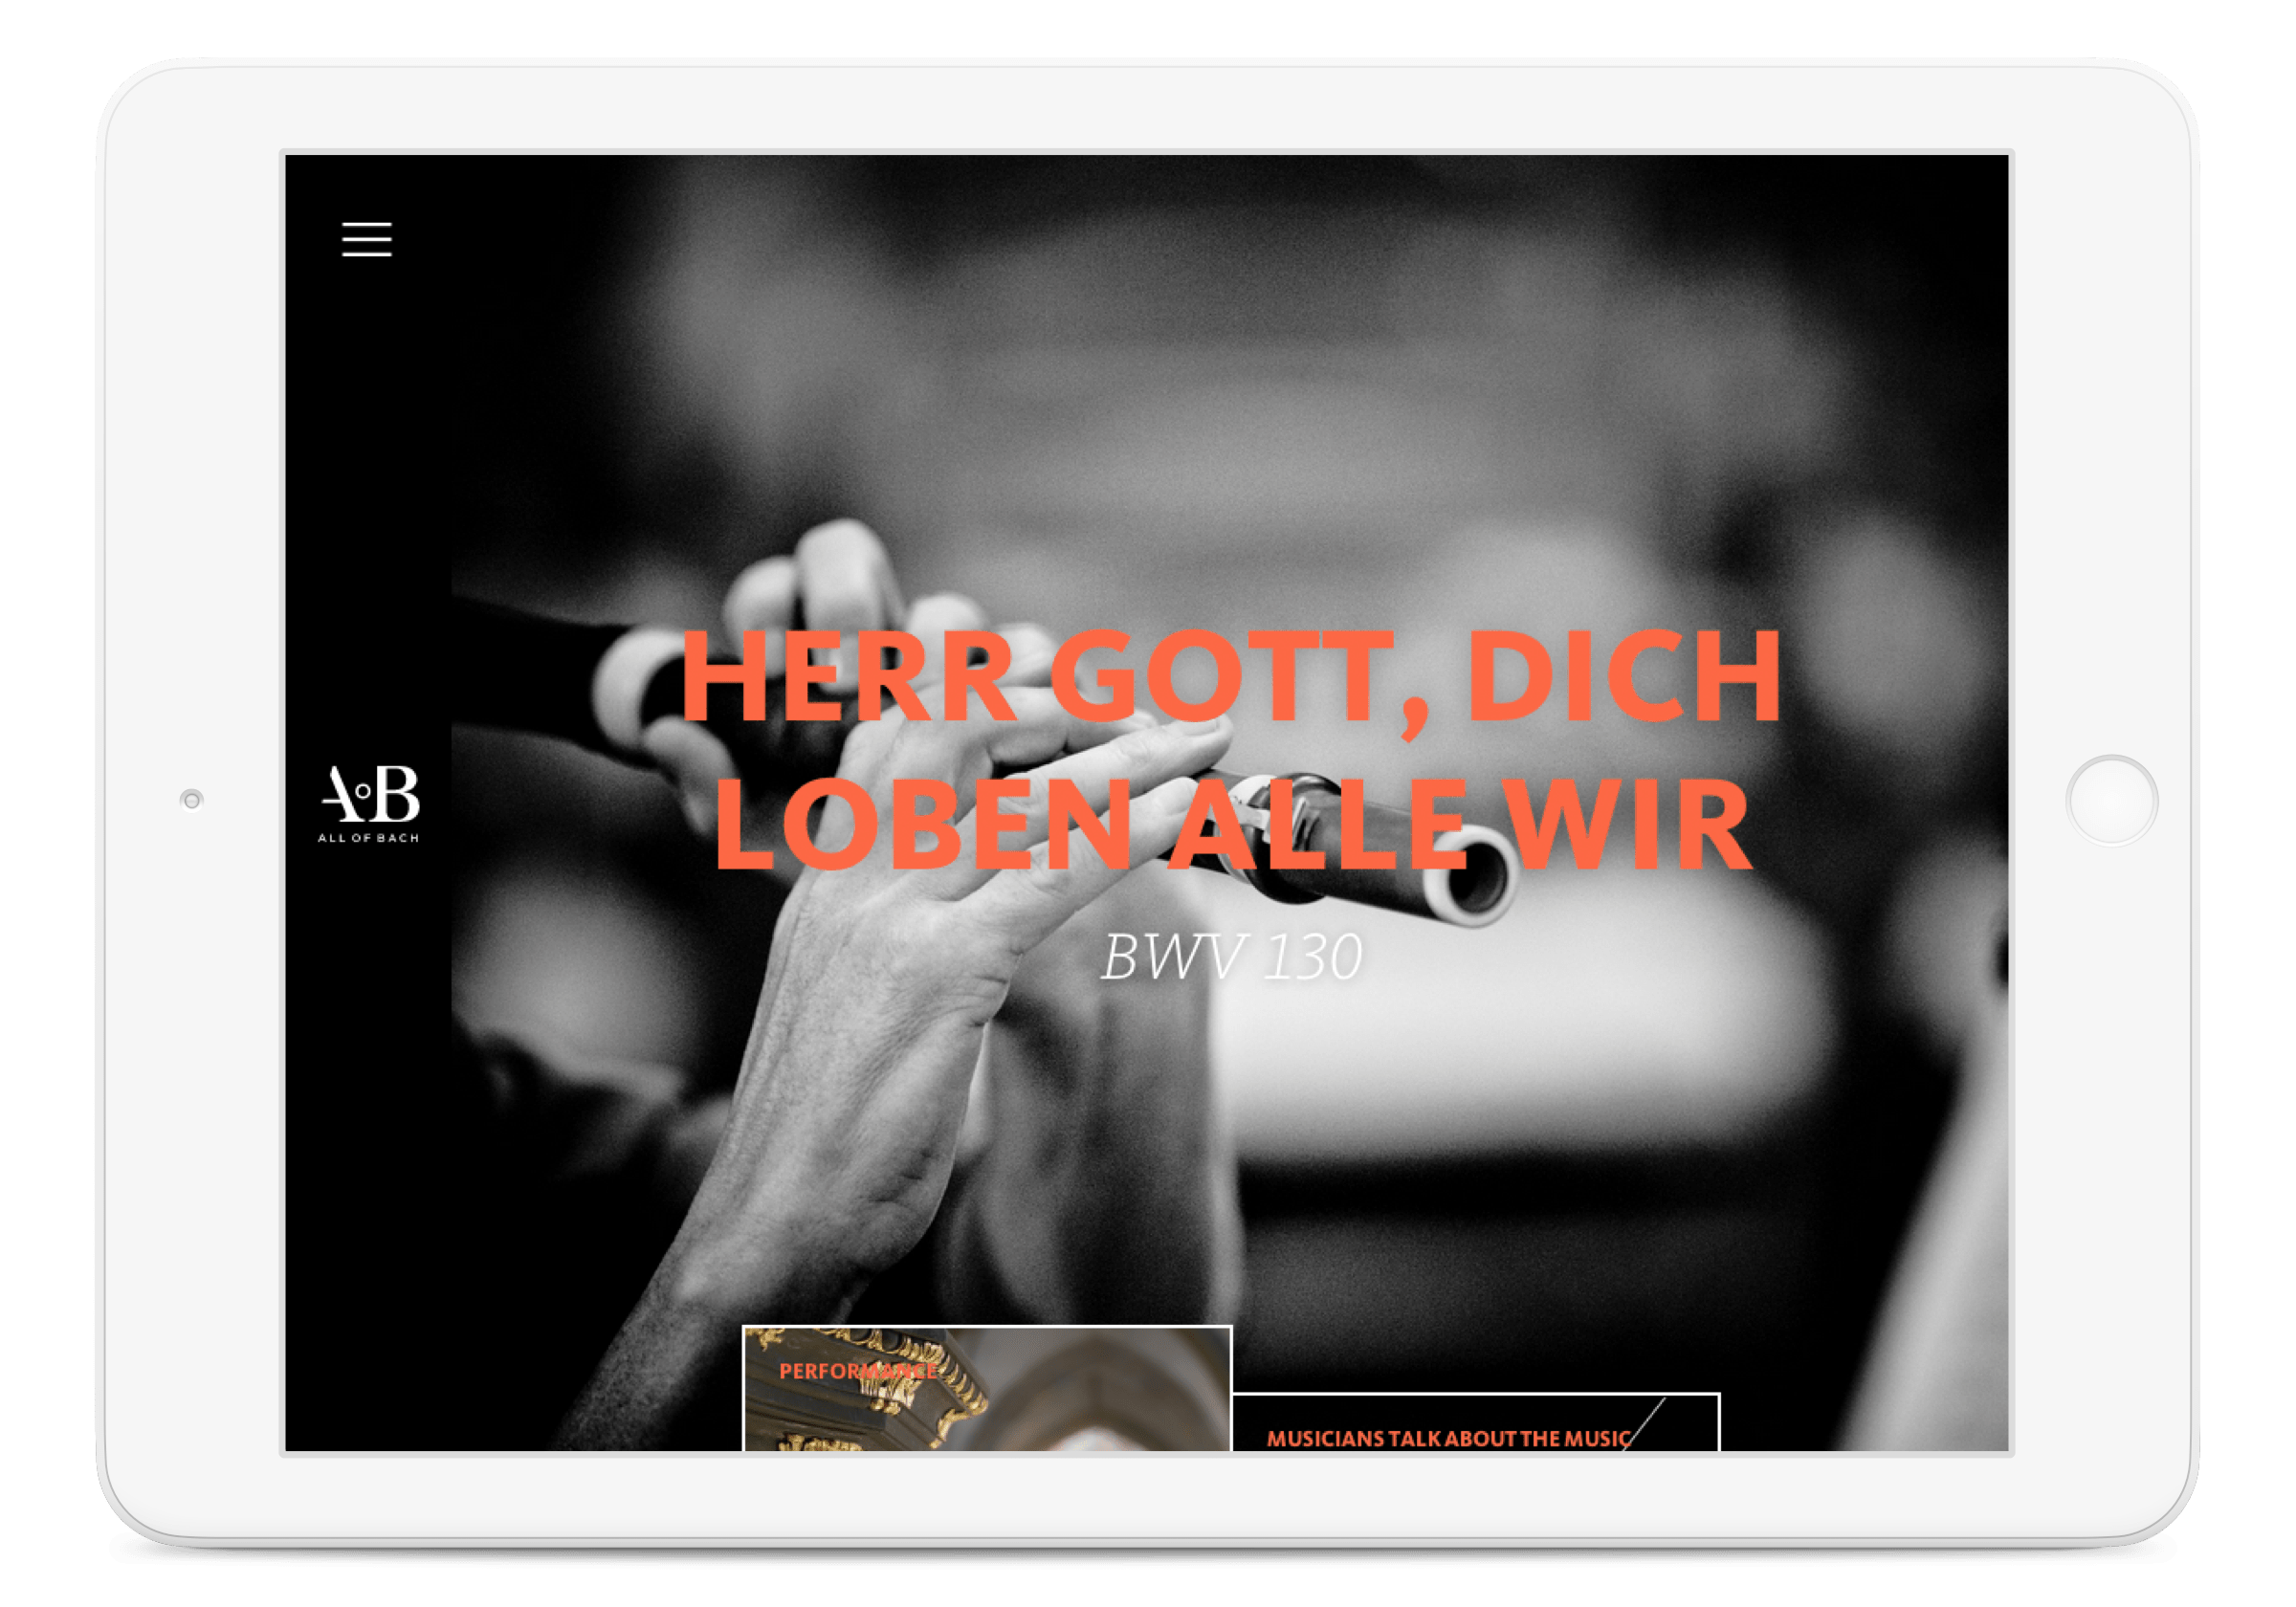 All of Bach website, edition landing page